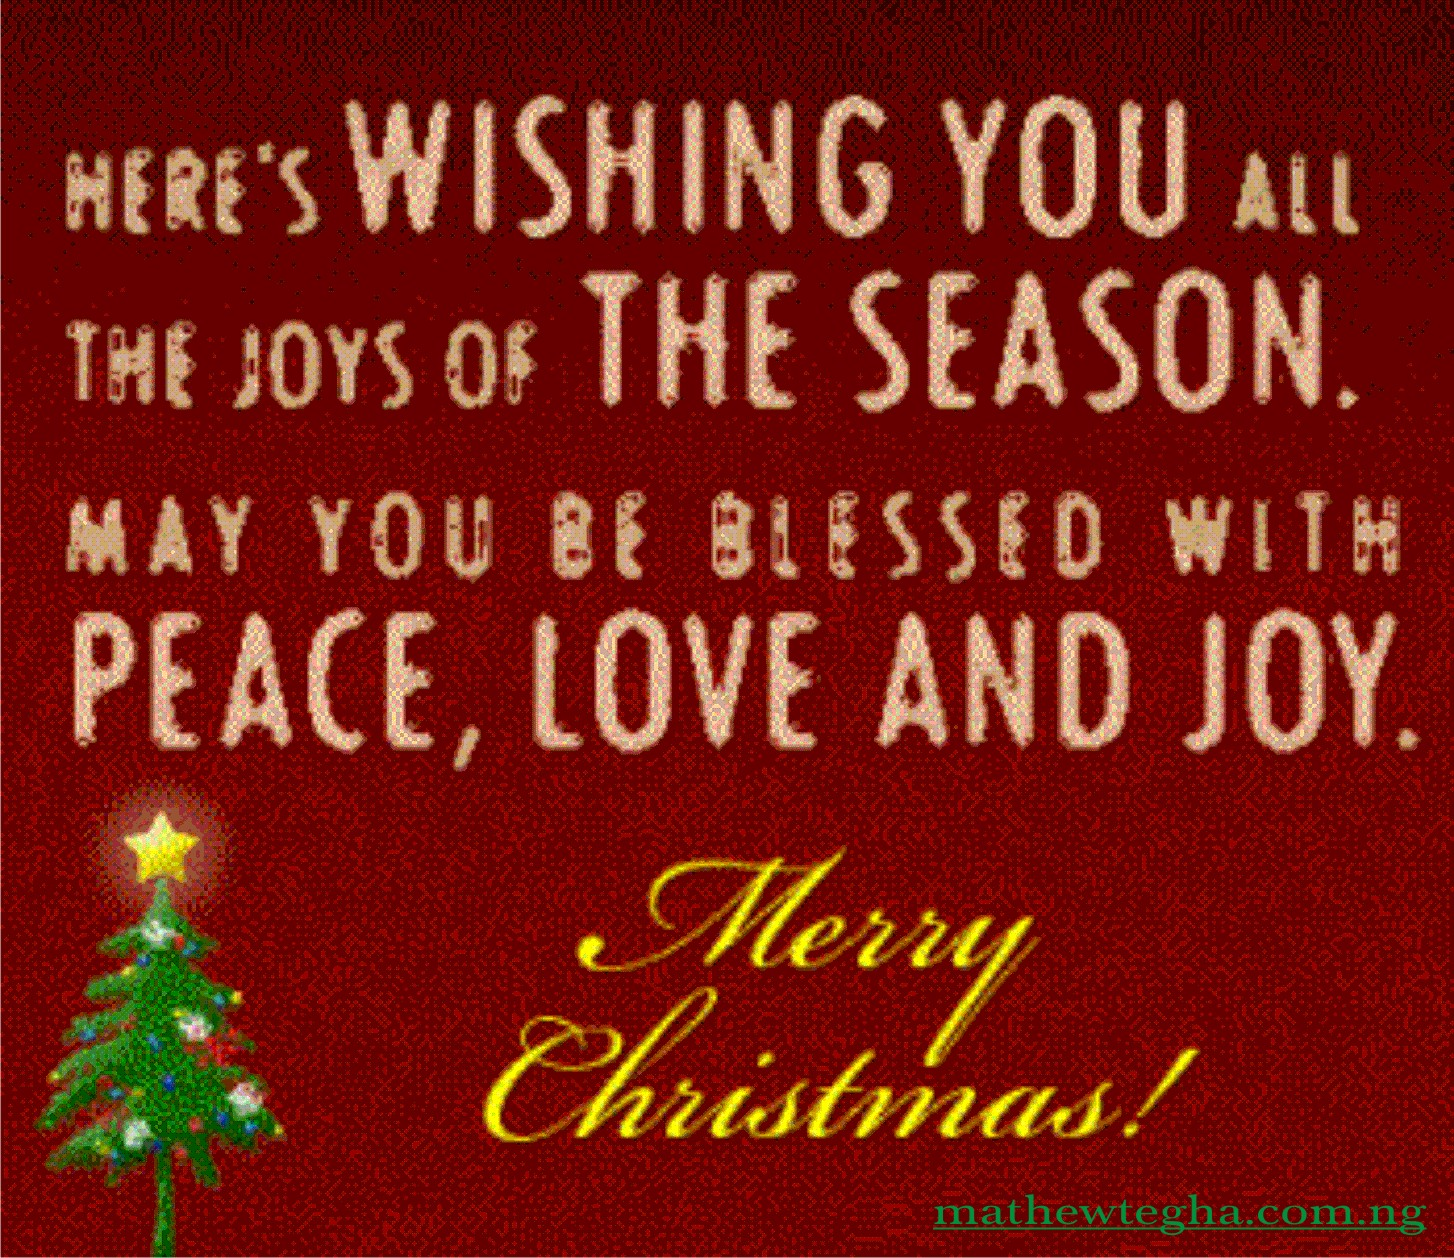 Merry Christmas Special Wall Papers Wishes Share With Friends